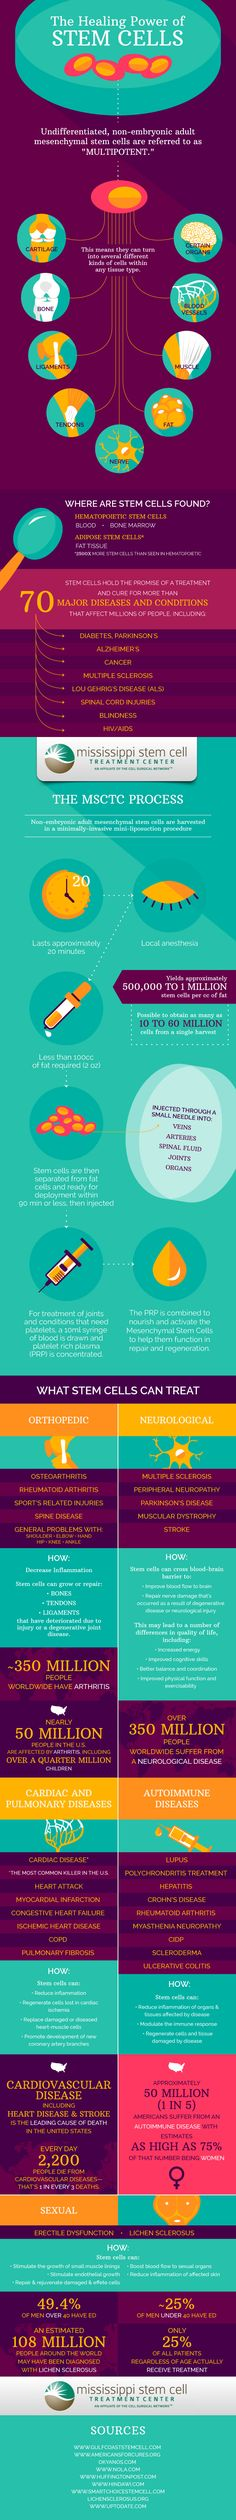 Stem cells are a rapidly emerging form of medical treatment. Learn more about stem cell research and stem cell treatment in this highly informative infographic.